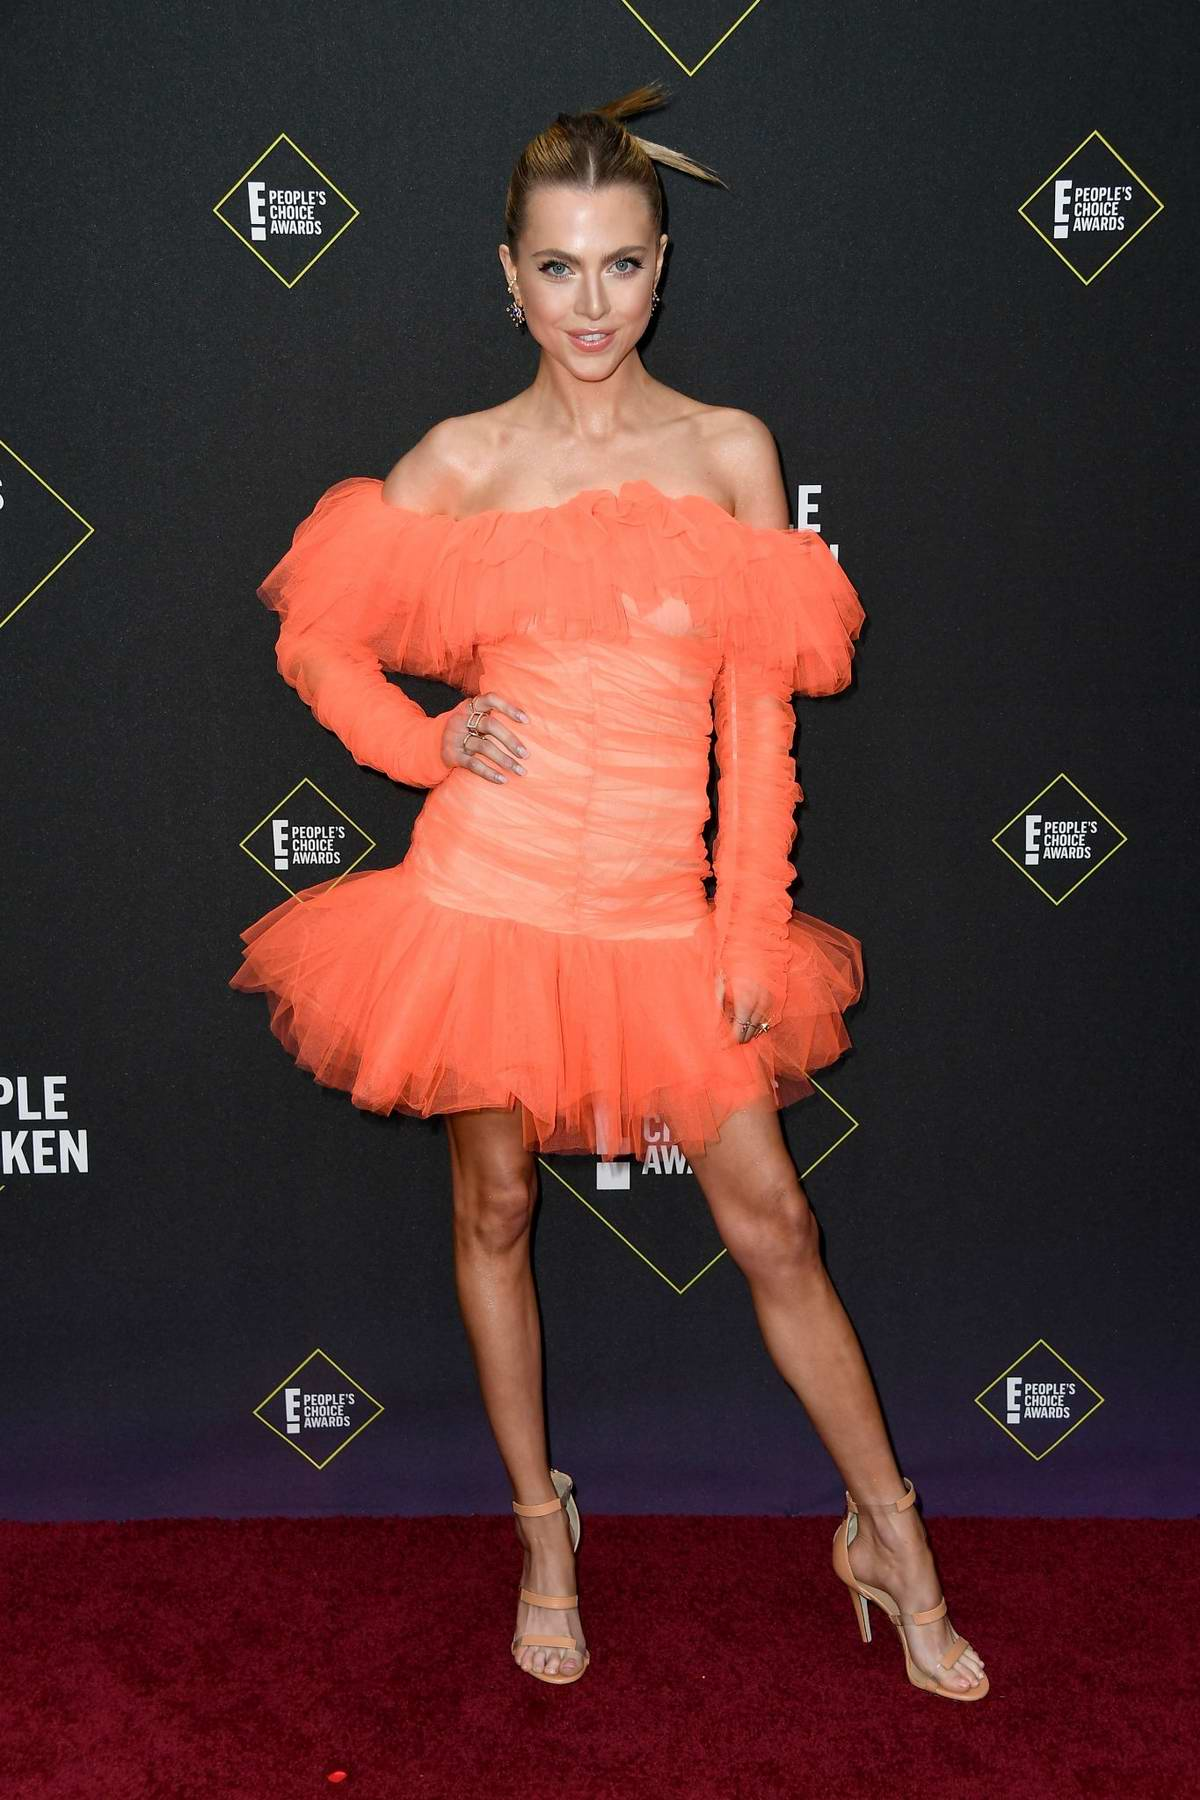 Anne Winters attends the 2019 E! People's Choice Awards held at the Barker Hangar in Santa Monica, California